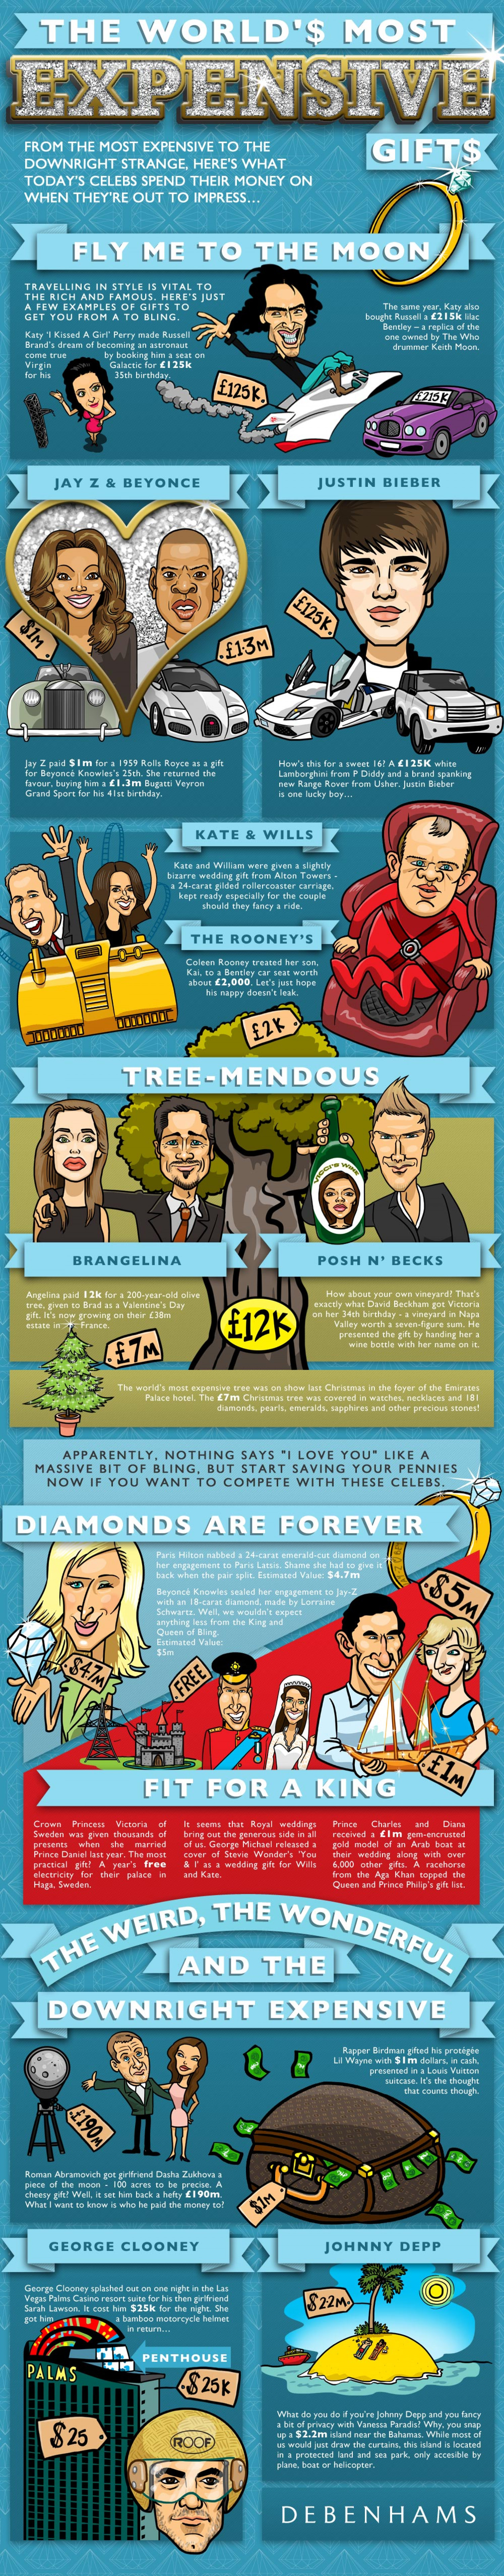 The World's Most Expensive Gifts Infographic